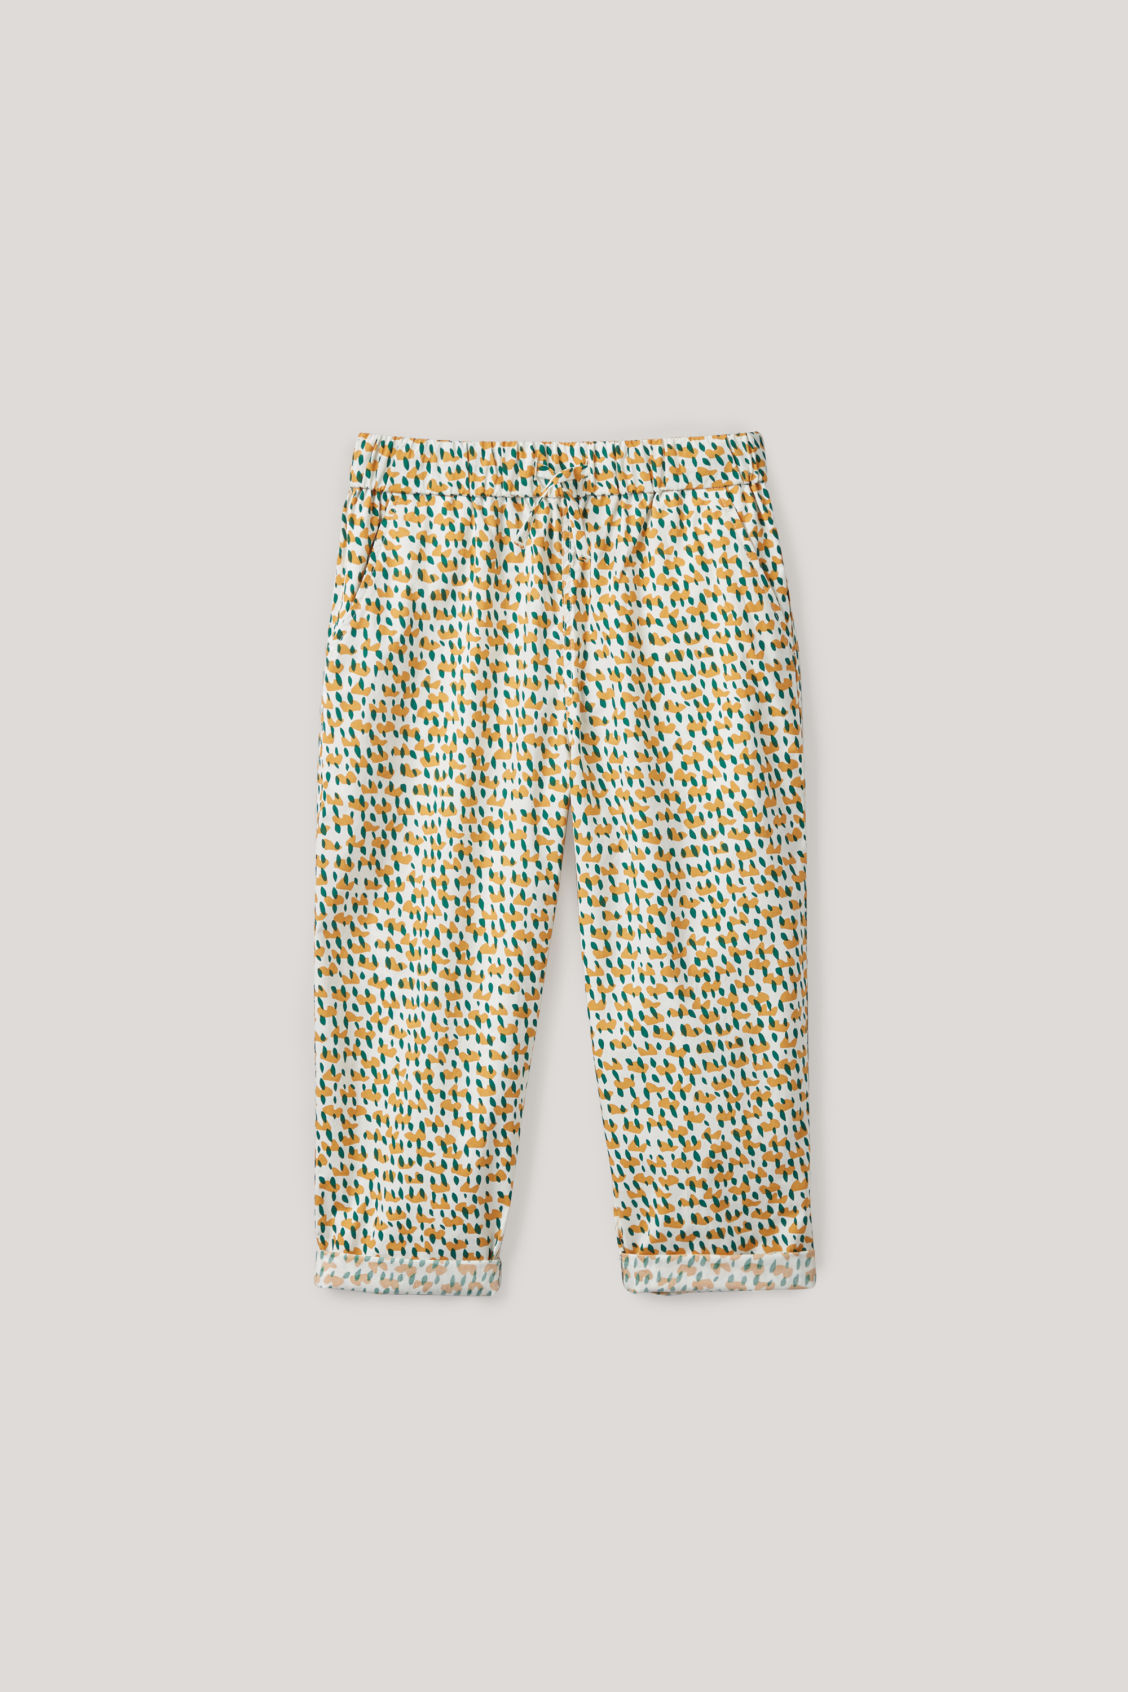 Cos Kids' Printed Elasticated Trousers In White